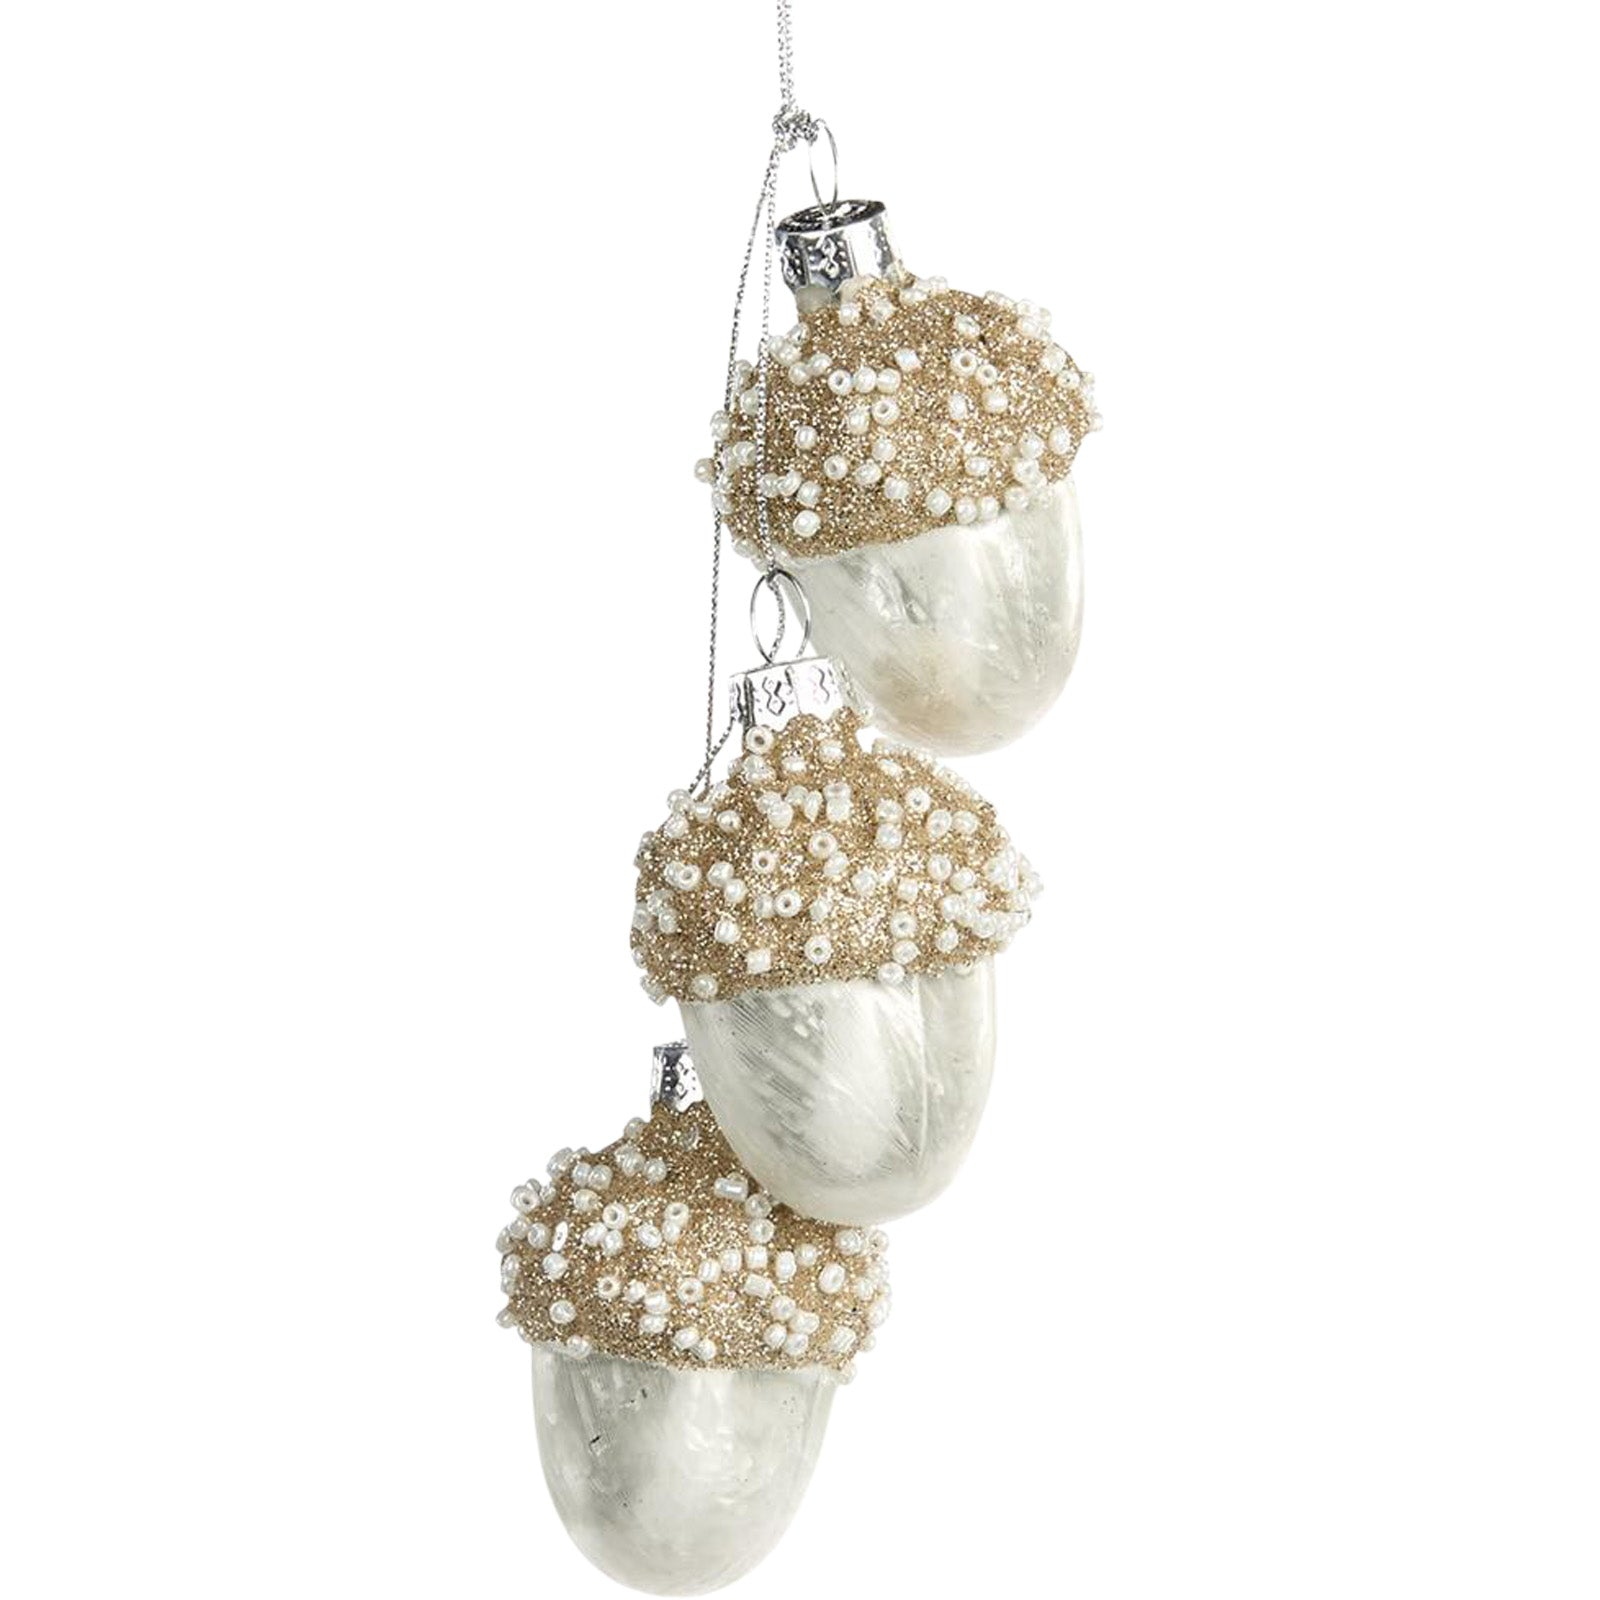 Acorn Cluster Ornament by LuxDeco -Christmas tree decoration - LuxDeco.com